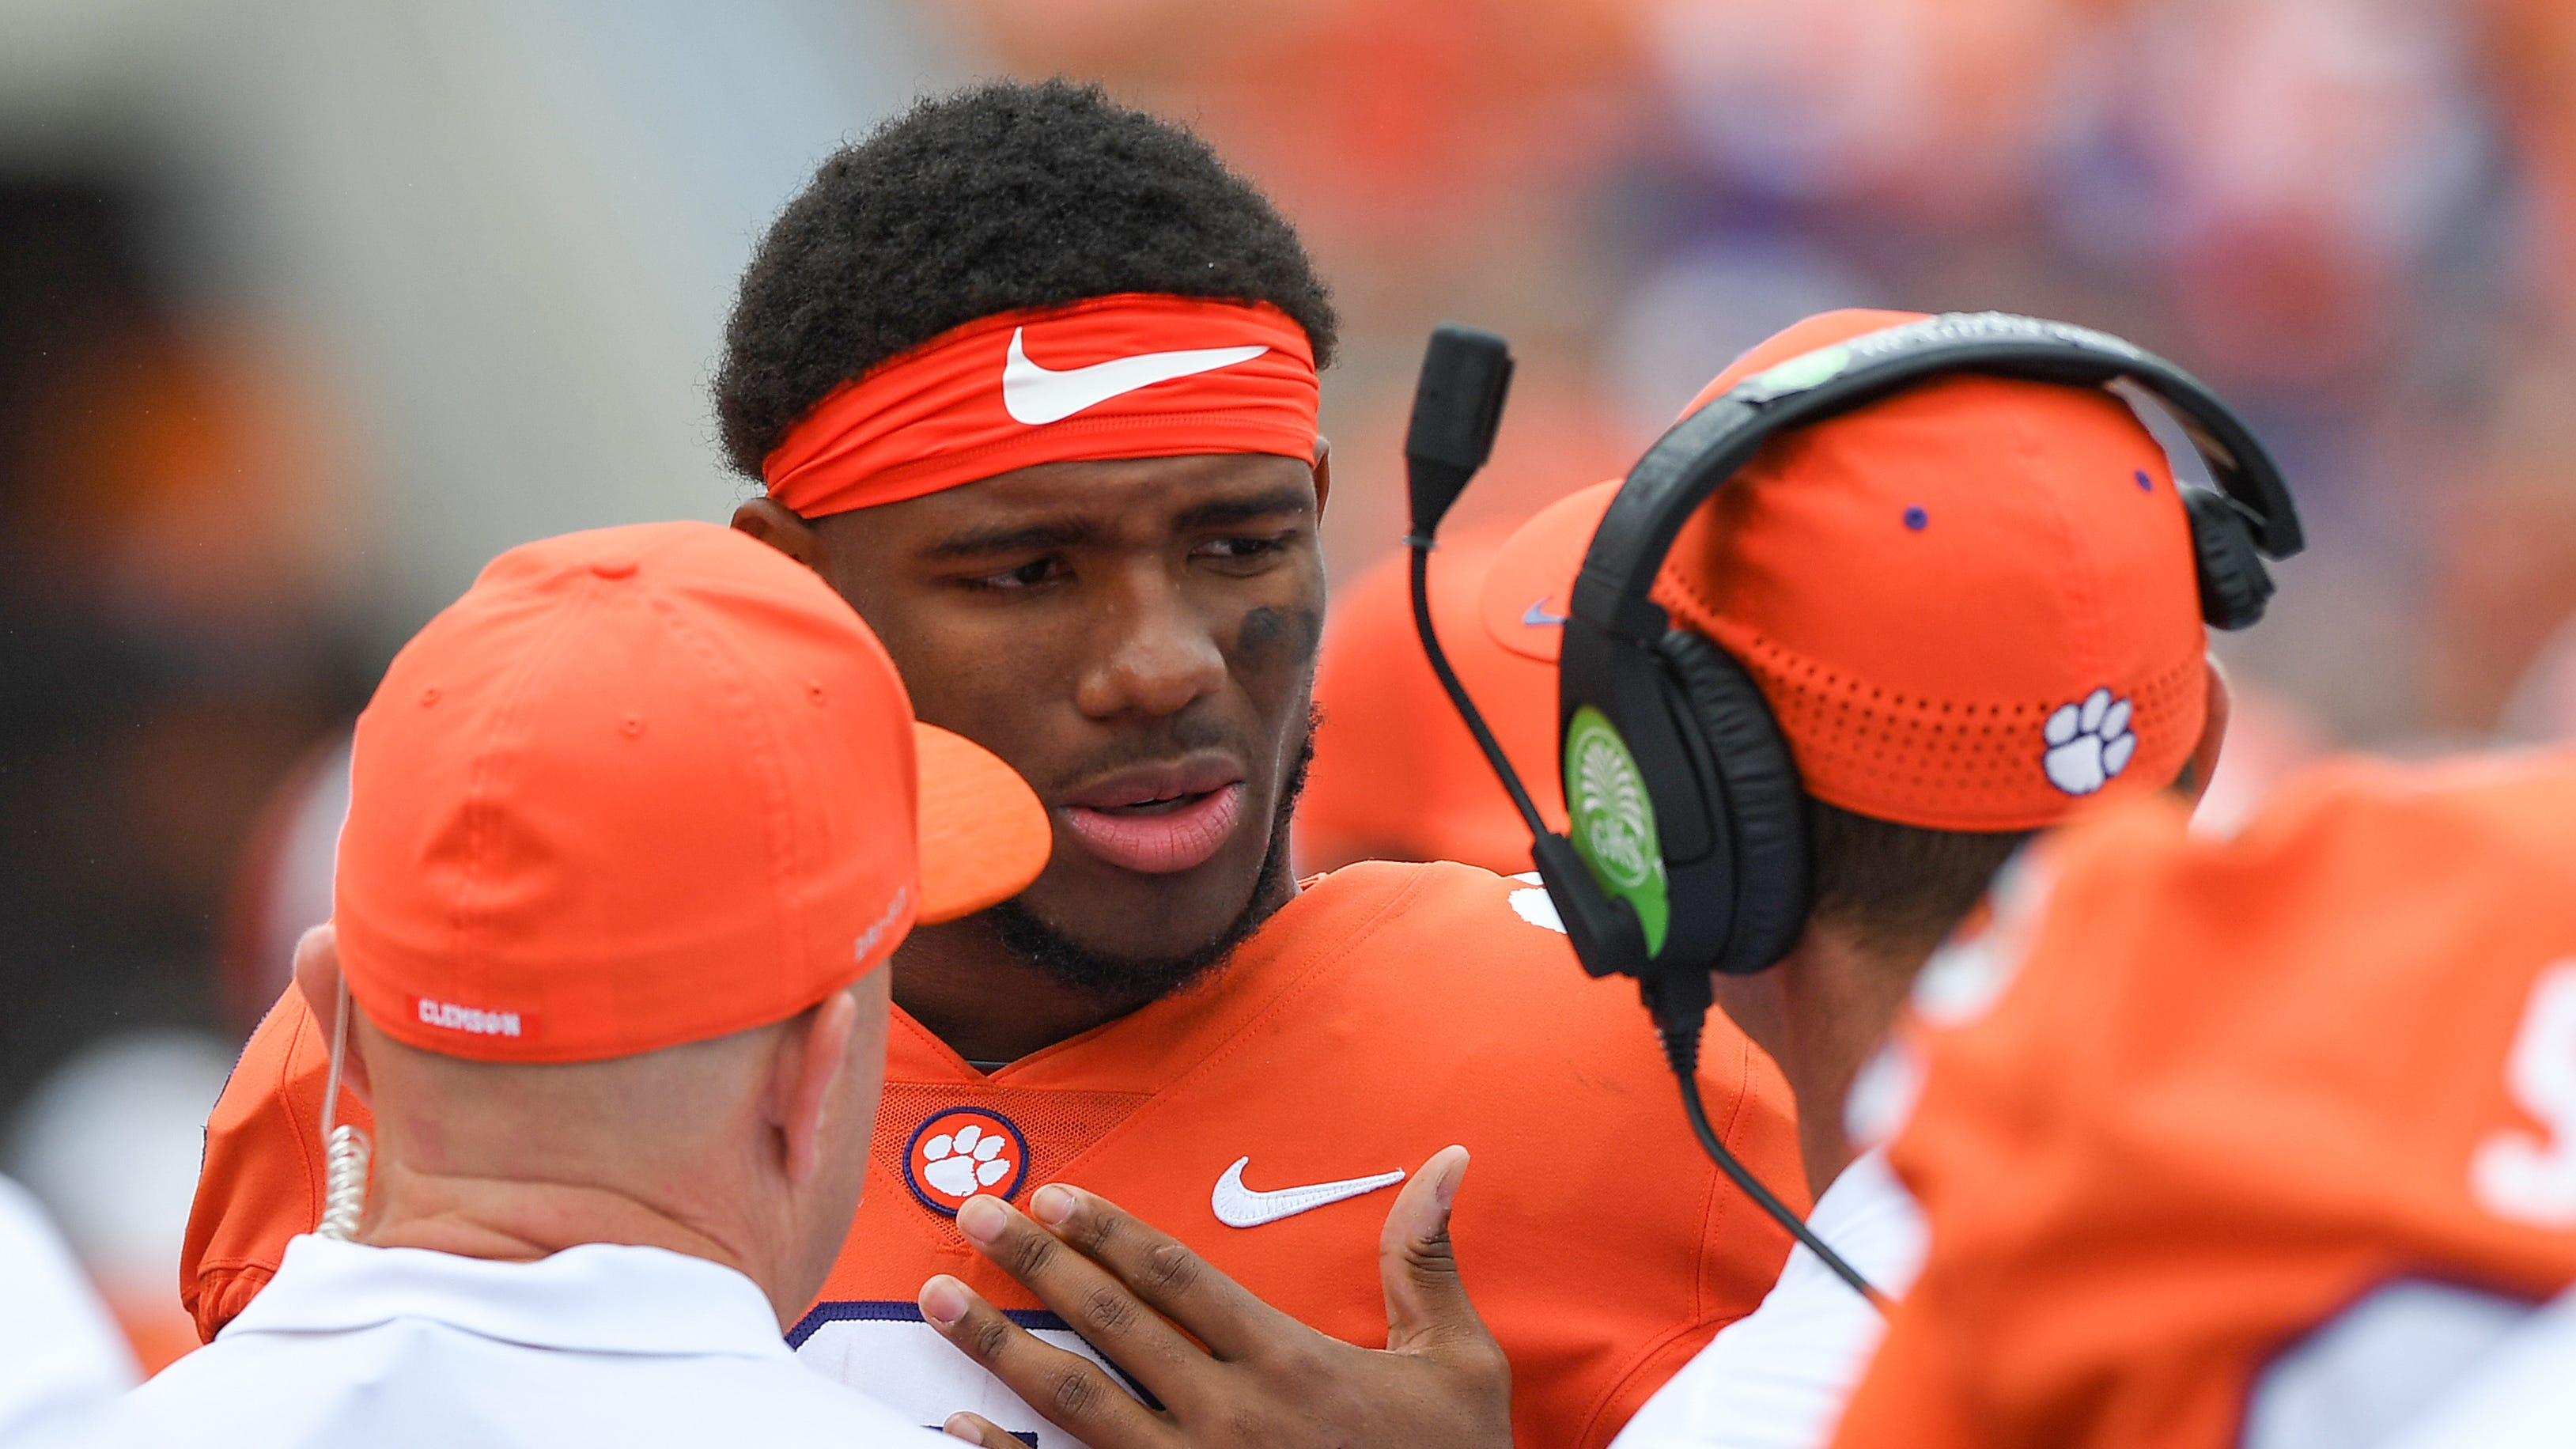 Clemson quarterback Kelly Bryant (2) talks with head coach Dabo Swinney after returning to the bench from the locker room during the 3rd quarter Saturday, September 15, 2018, at Clemson's Memorial Stadium.